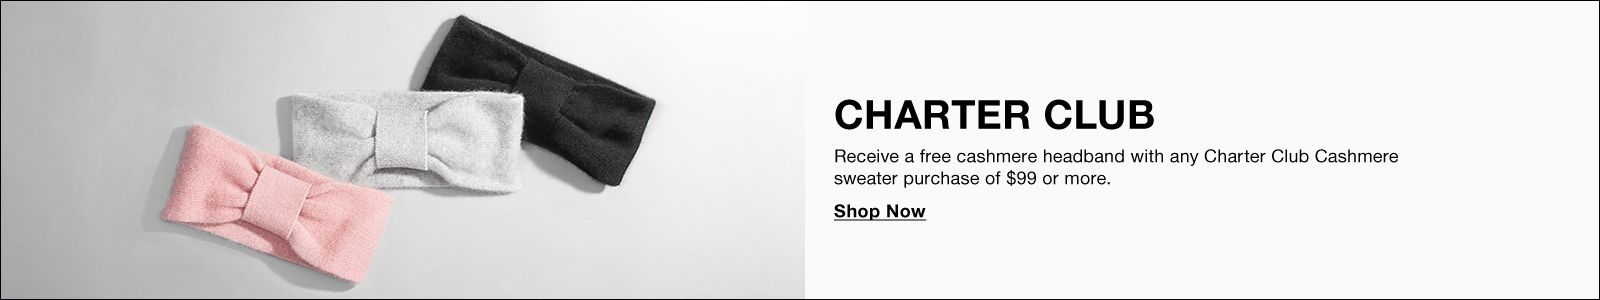 Charter Club, Receive a free cashmere headband with any Charter Clun Cashmere sweater purchase of $99 or more, Shop Now